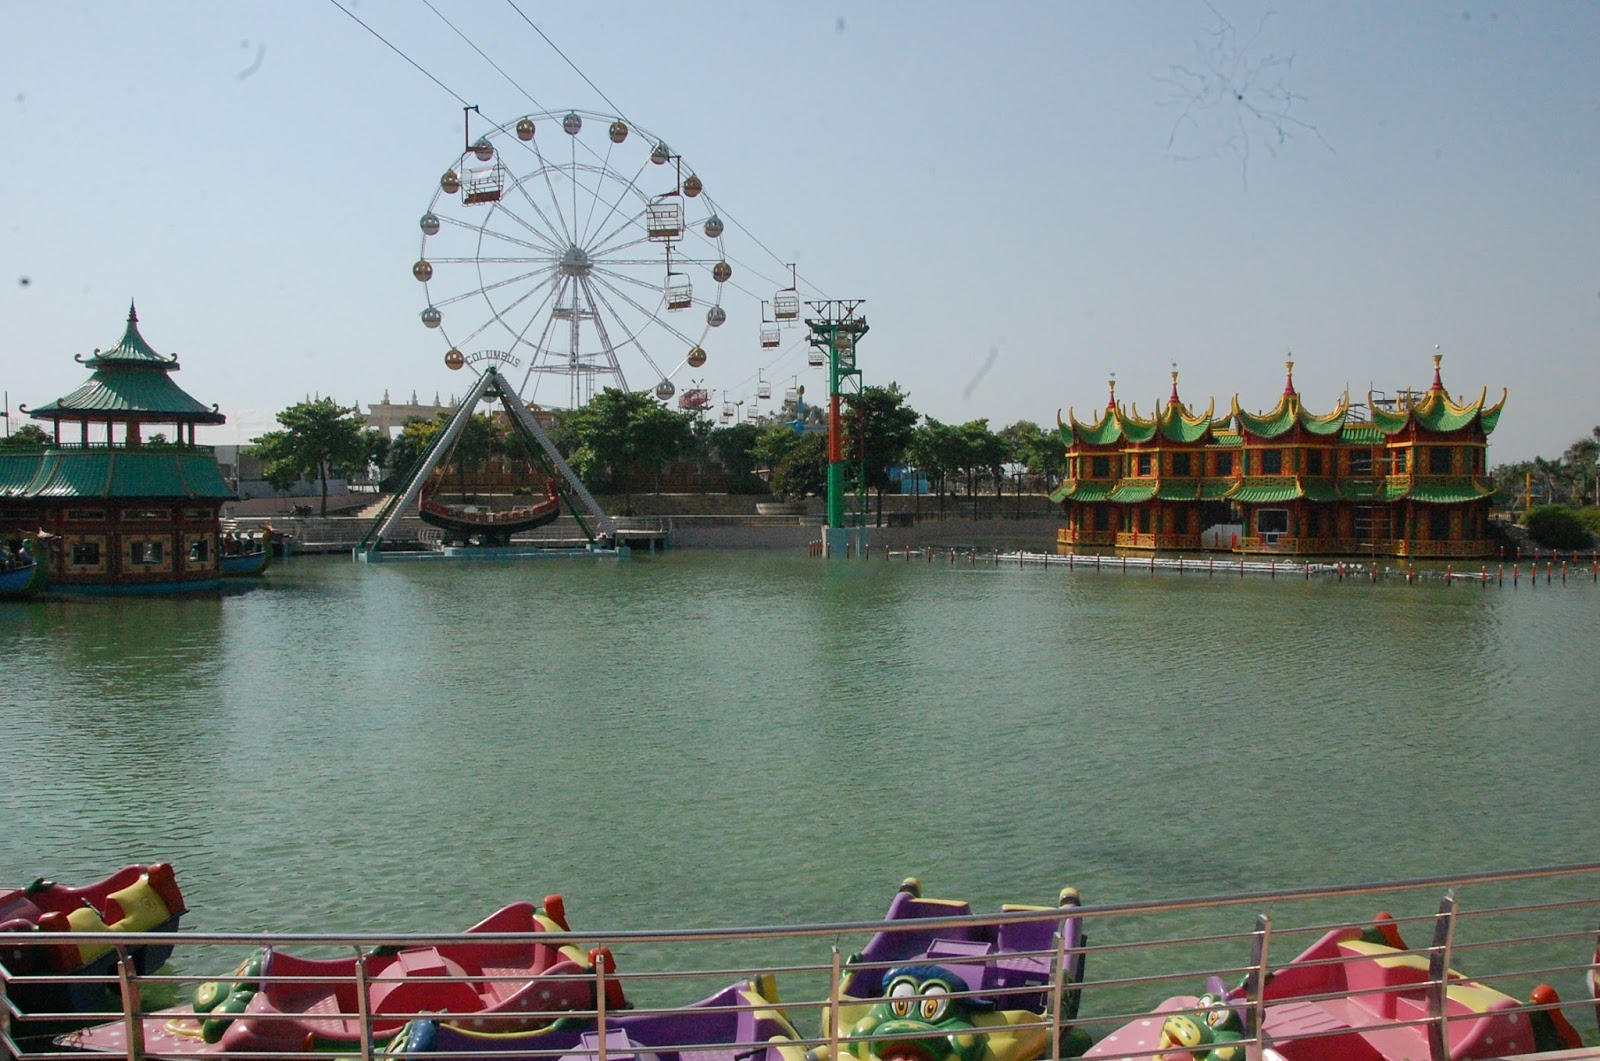 Blue World theme park tour packages, mandhana Kanpur